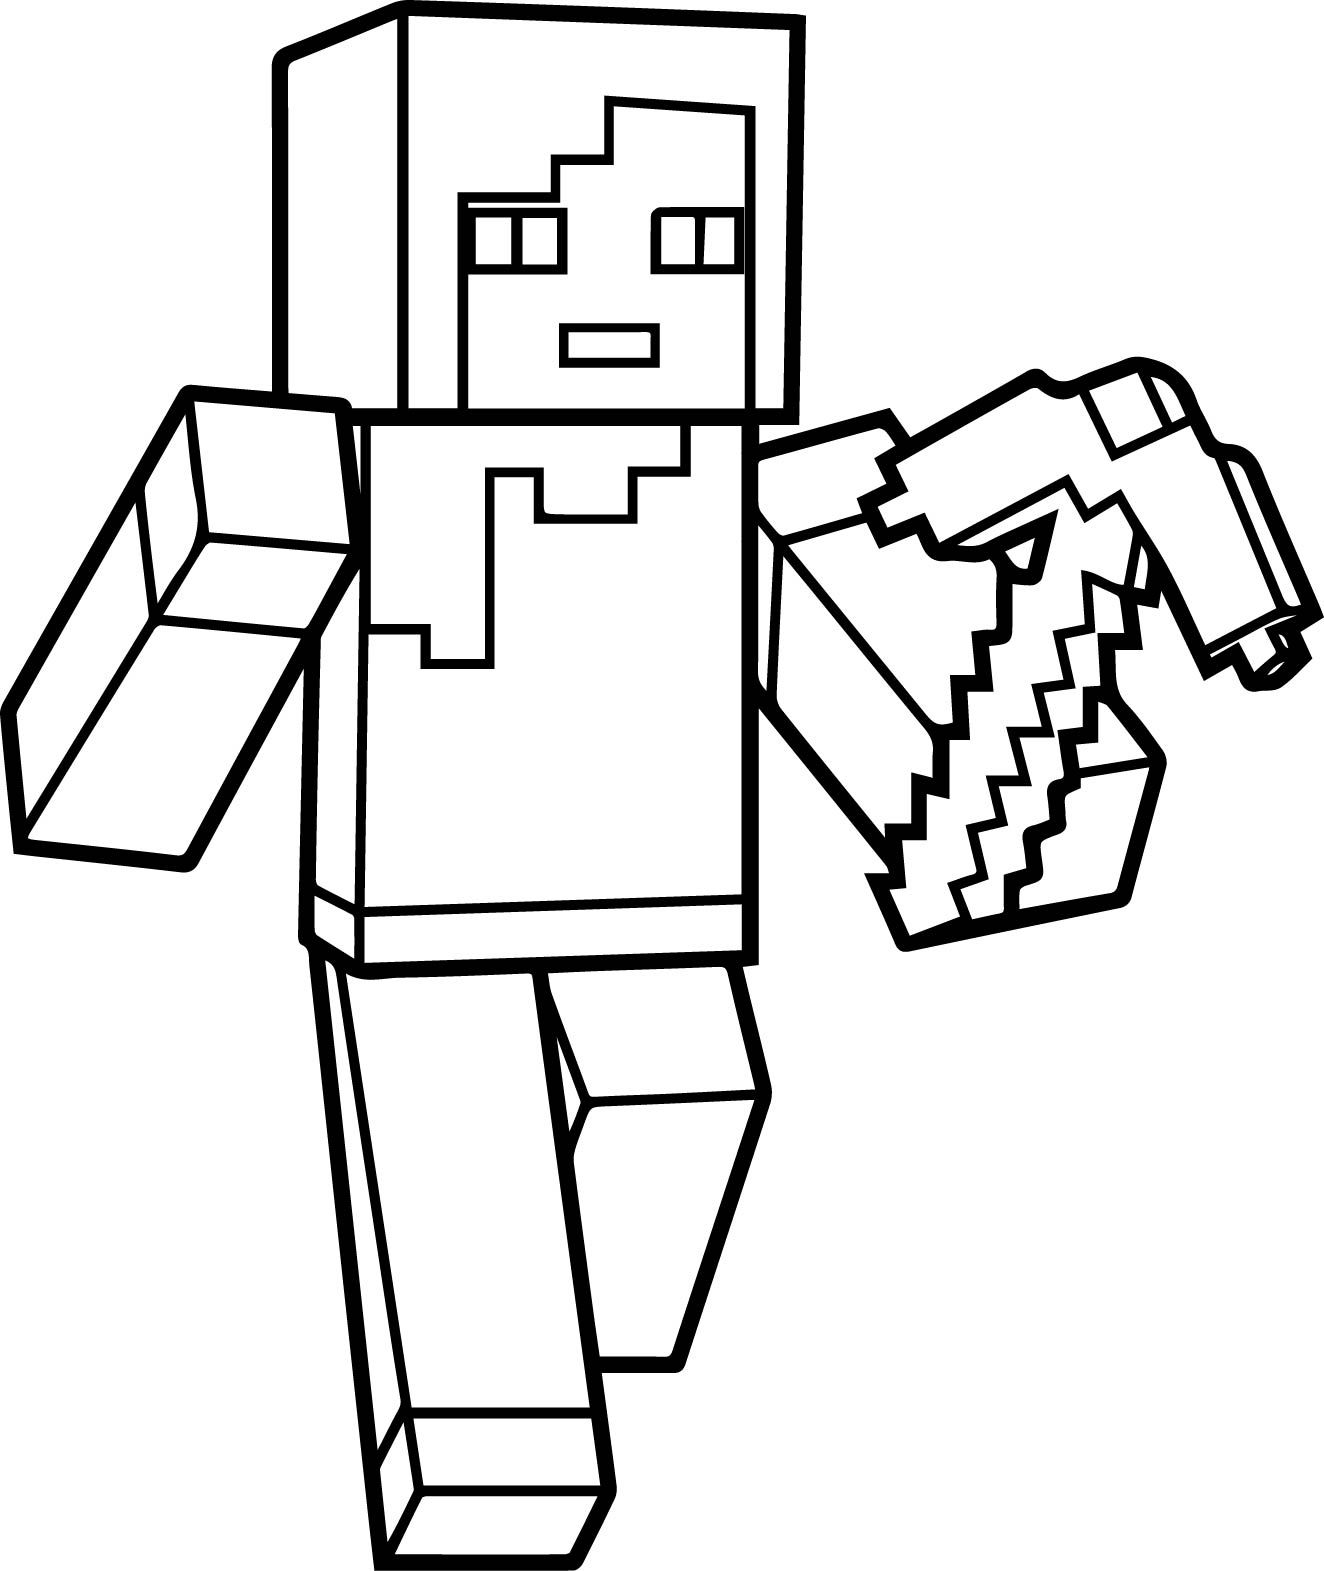 1324x1571 Minecraft Steve Coloring Page